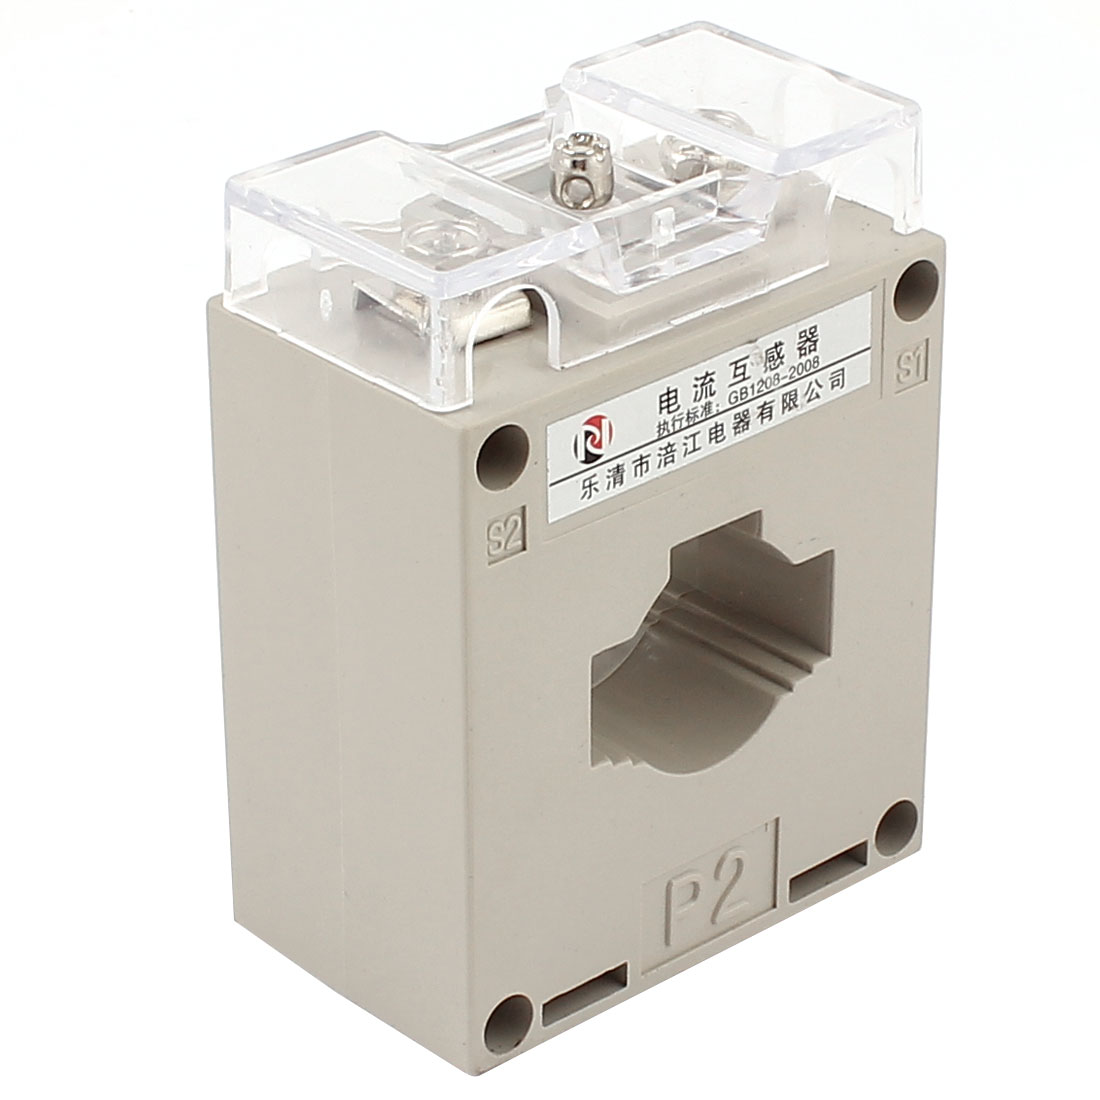 BH-0.66CT Ratio 50/5 1T Conductor Through Current Transformer Sensor